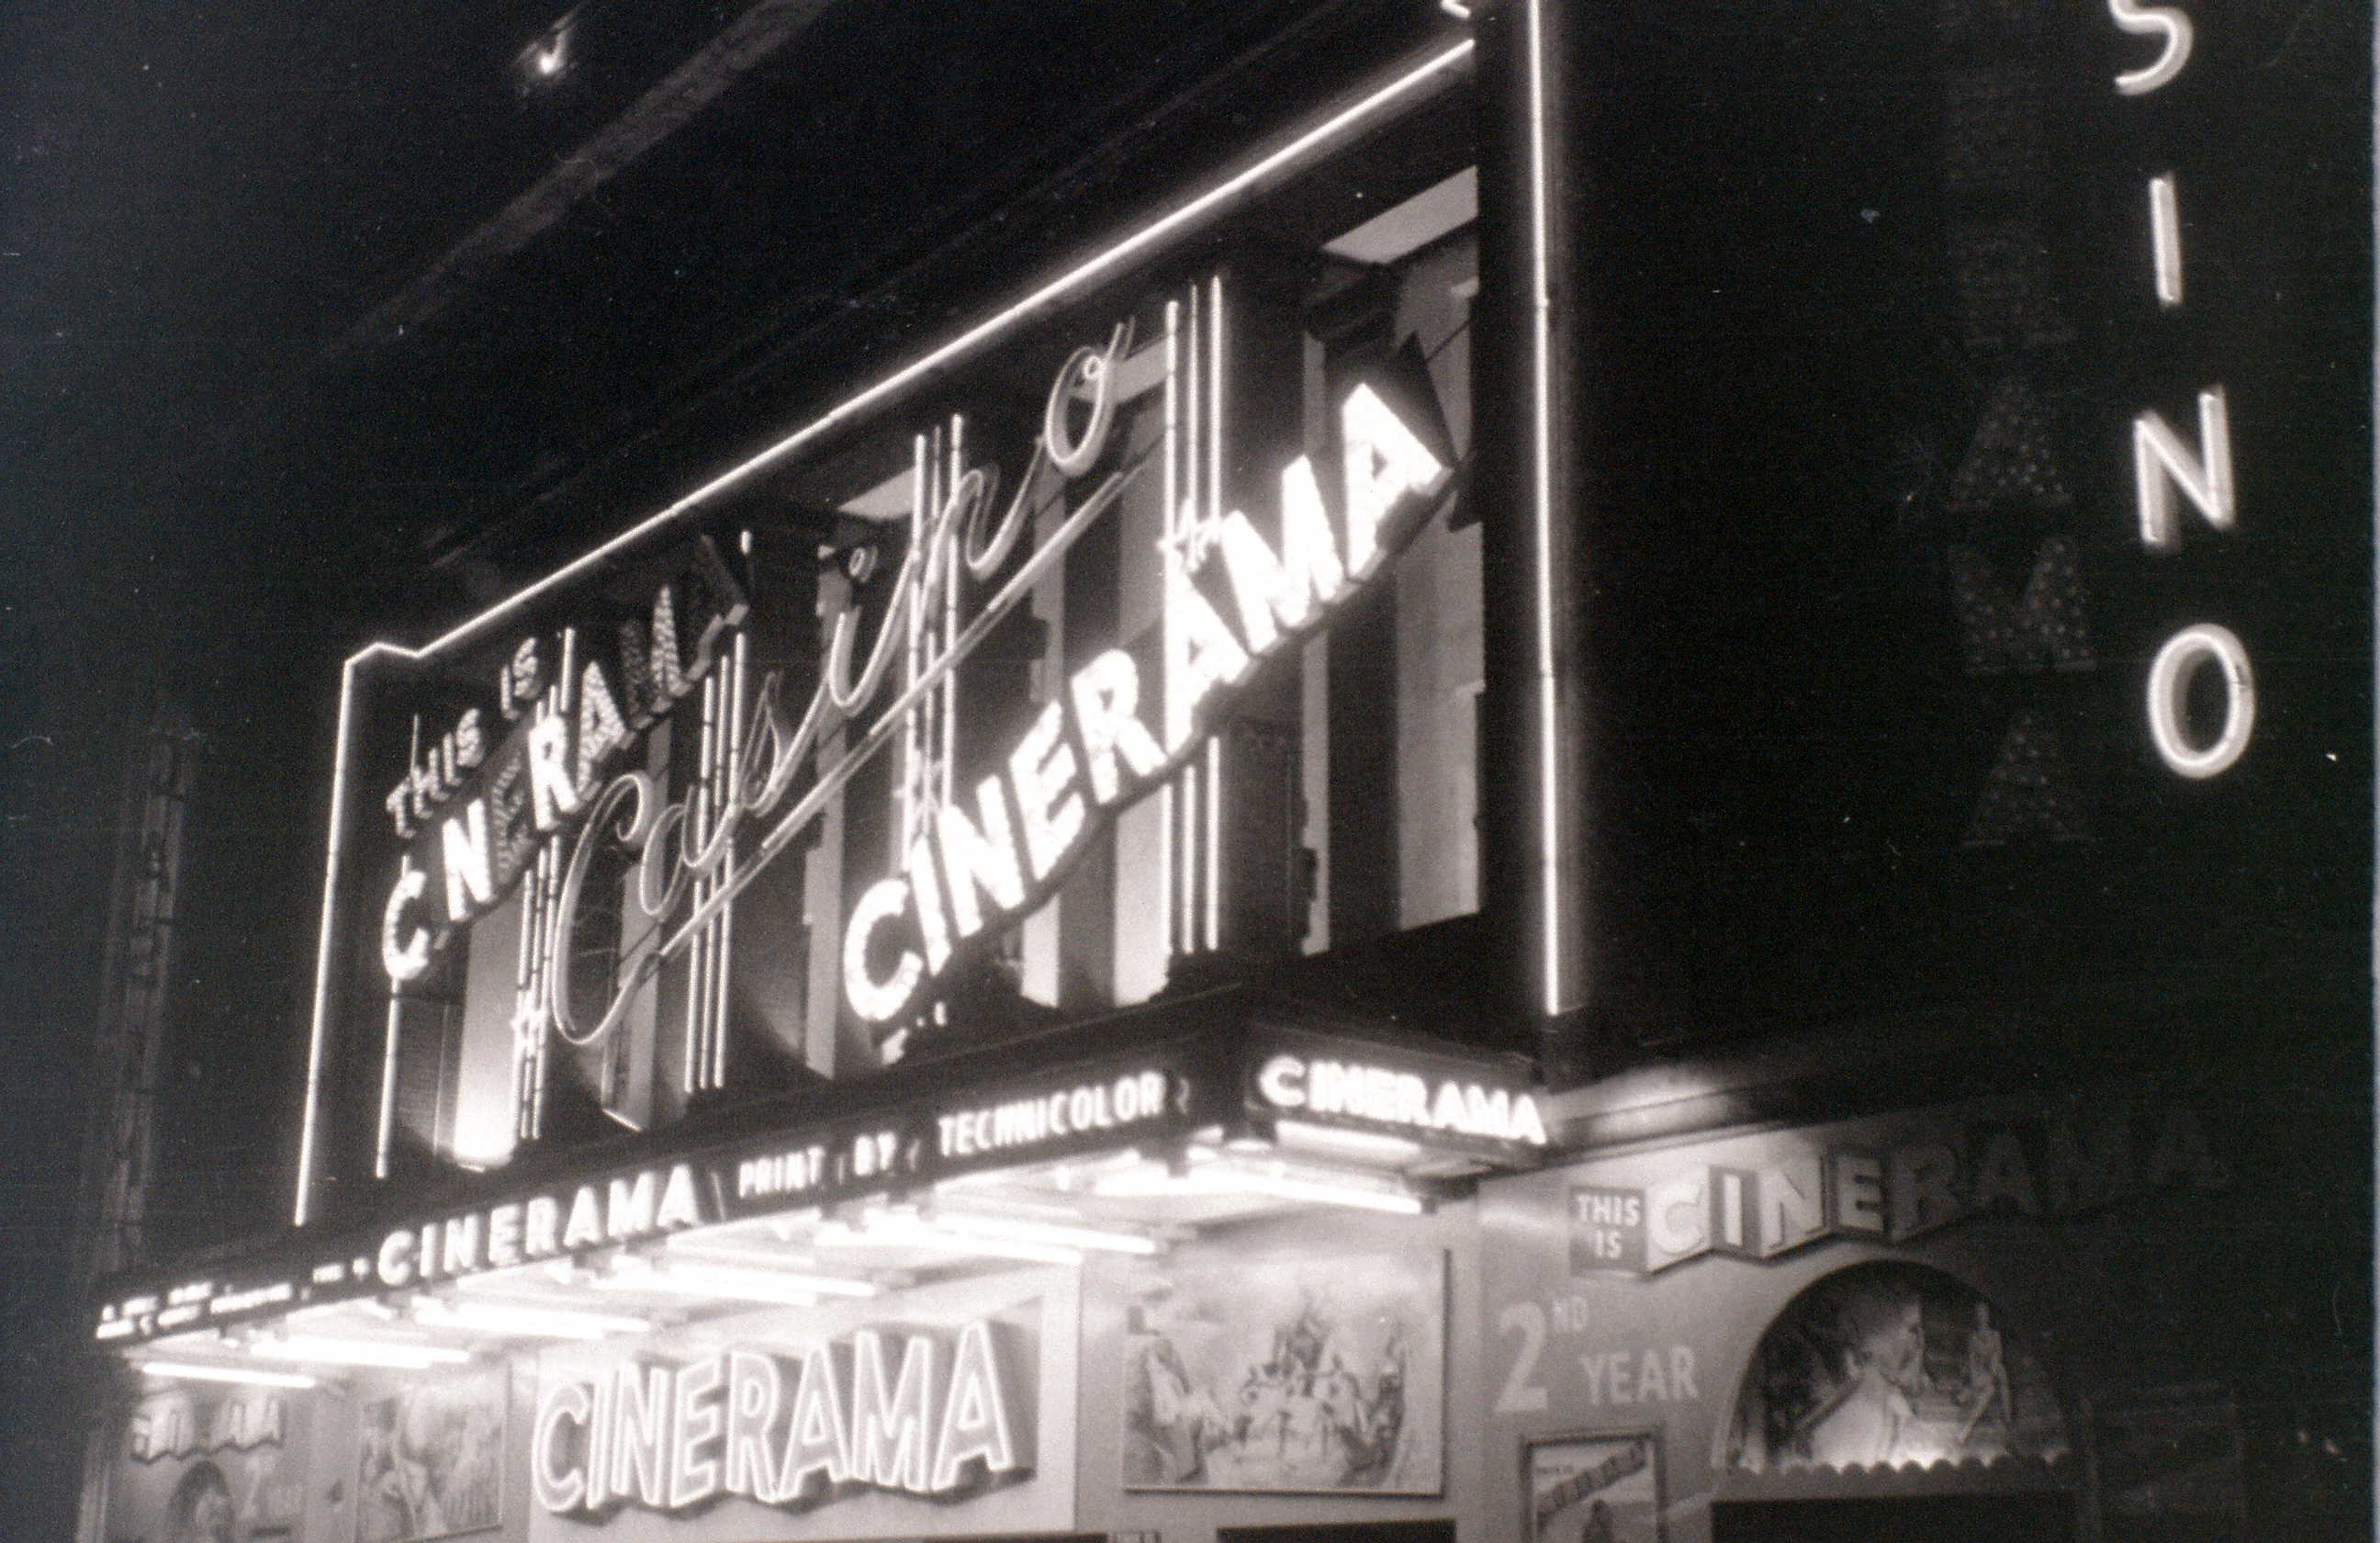 Cinerama, Casino Cinema, Soho, London, 5 November 1955